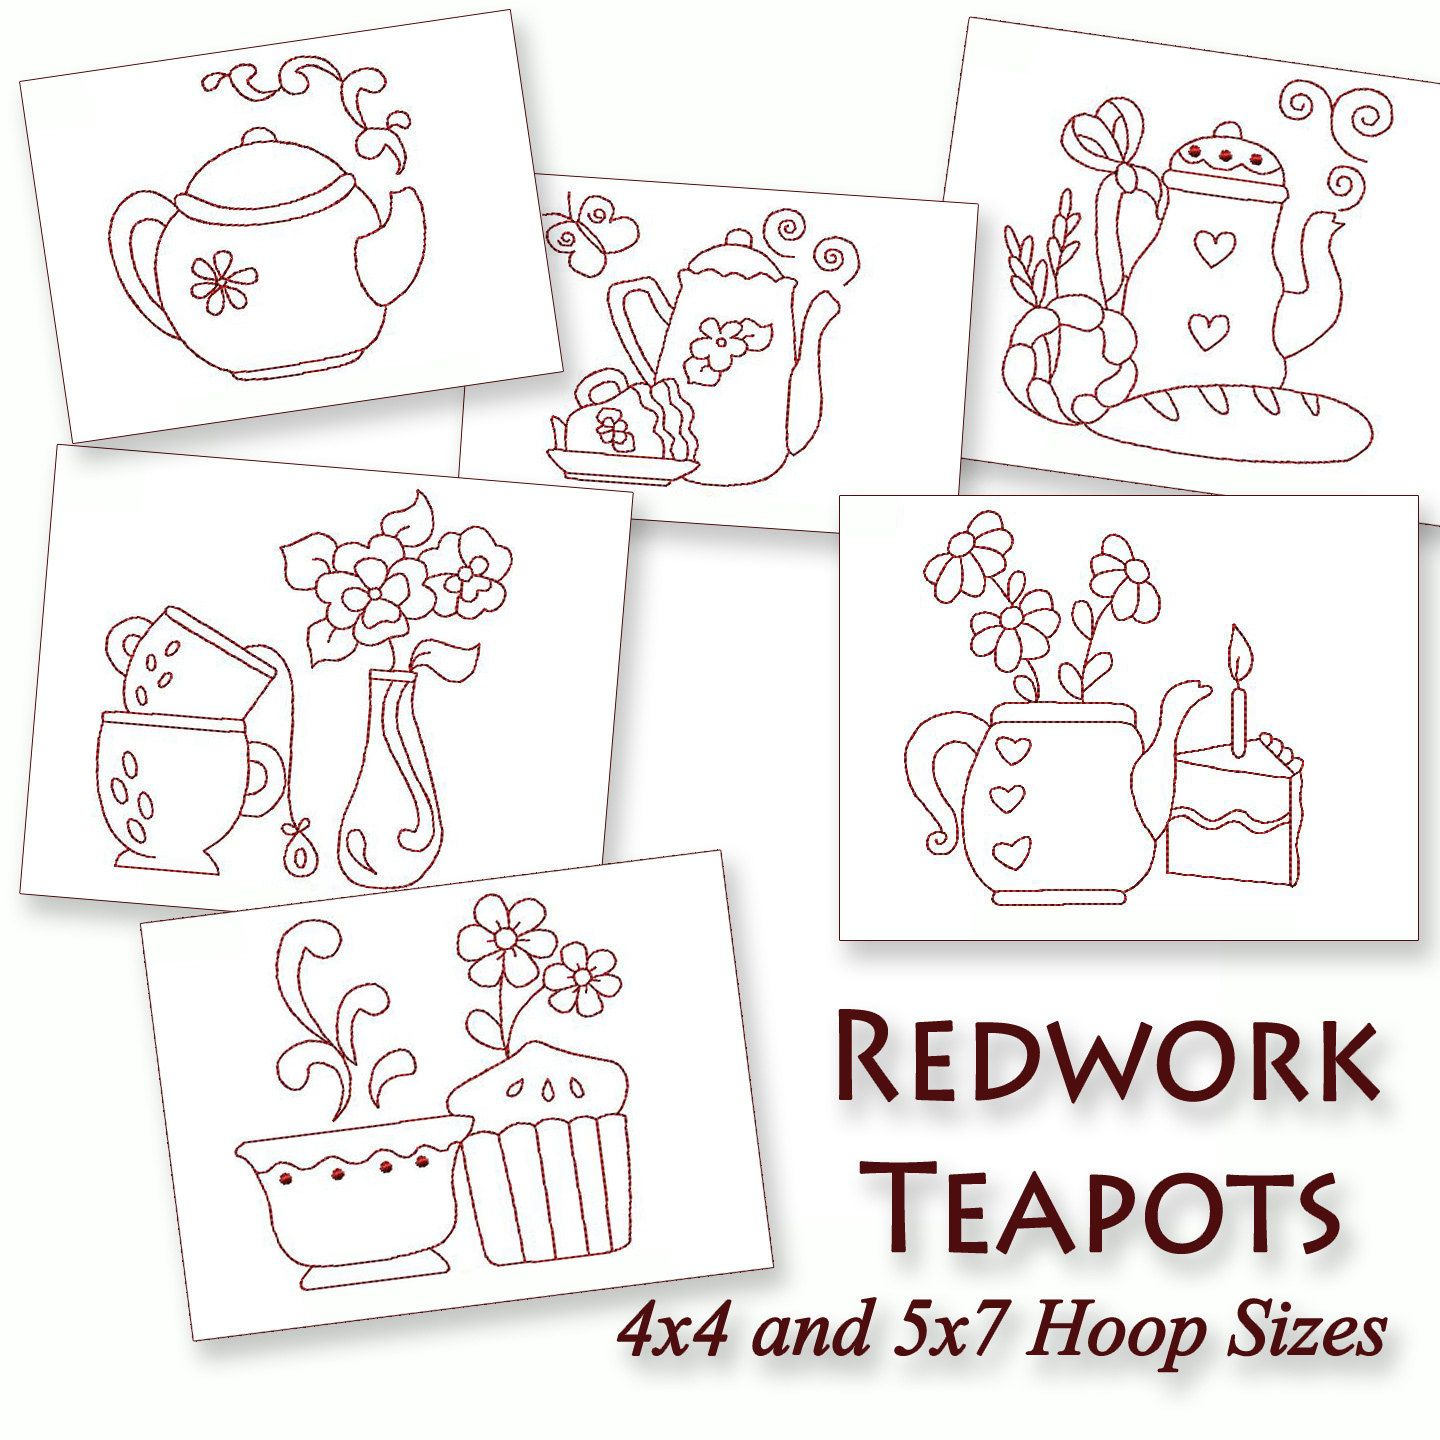 Kitchen Teapots Redwork Machine Embroidery Patterns / Designs   And Hoopu2026